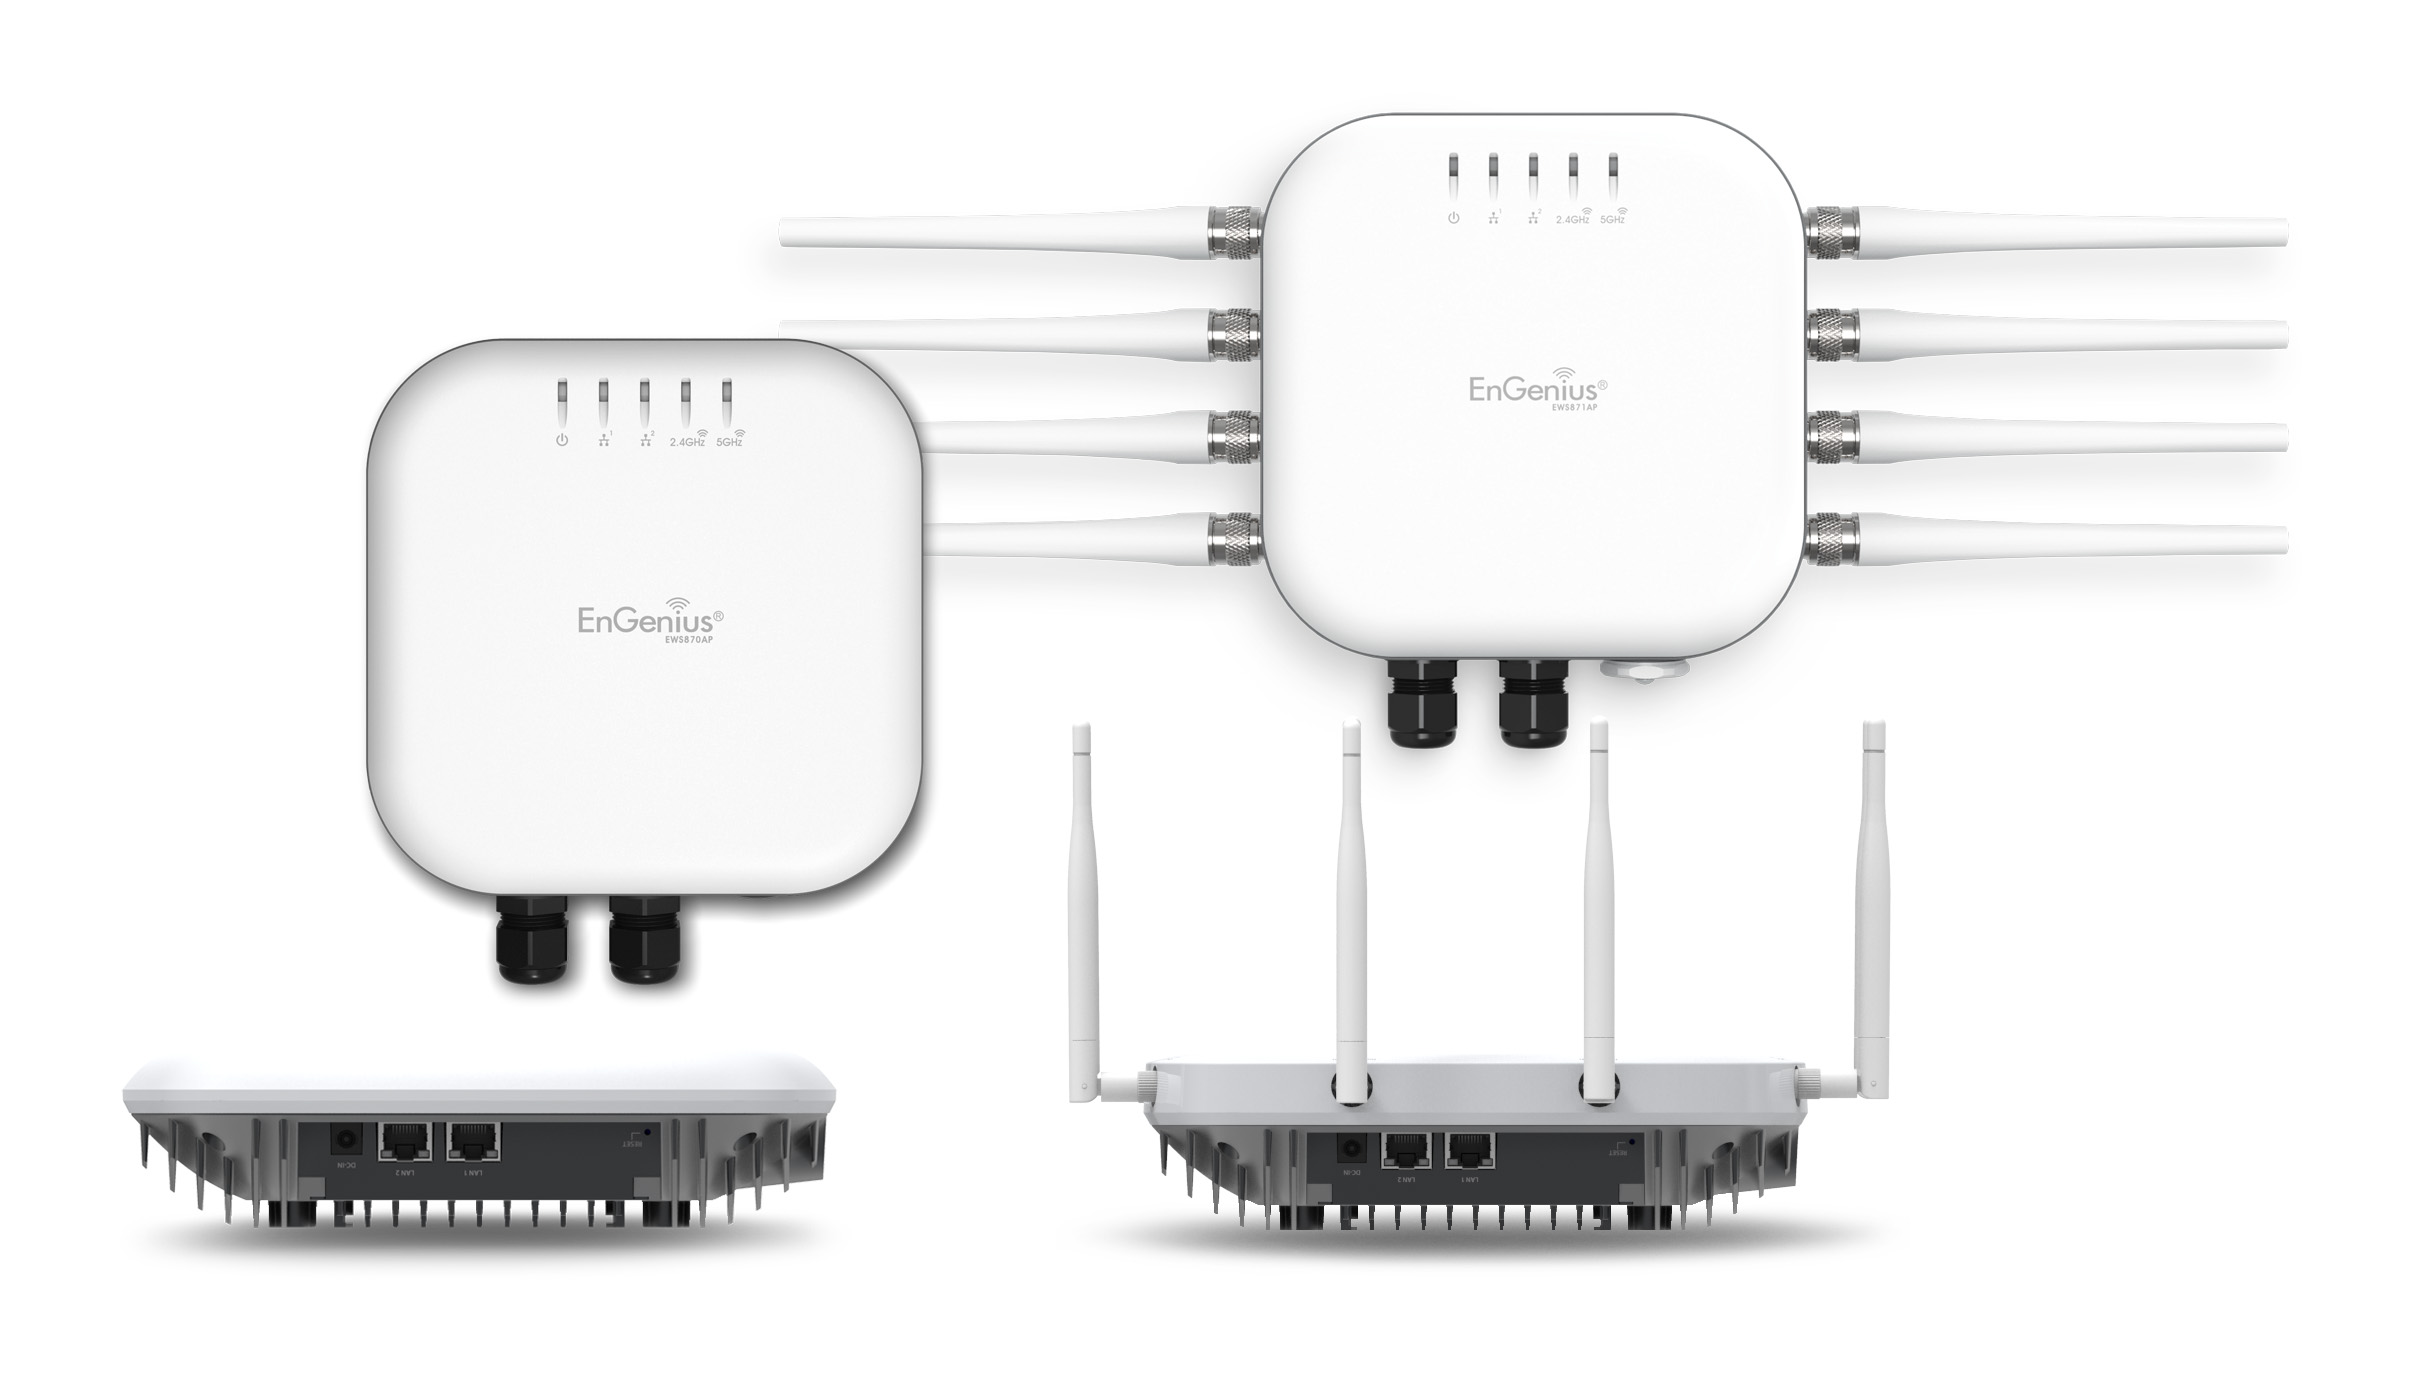 EnGenius Neutron 11ac access points